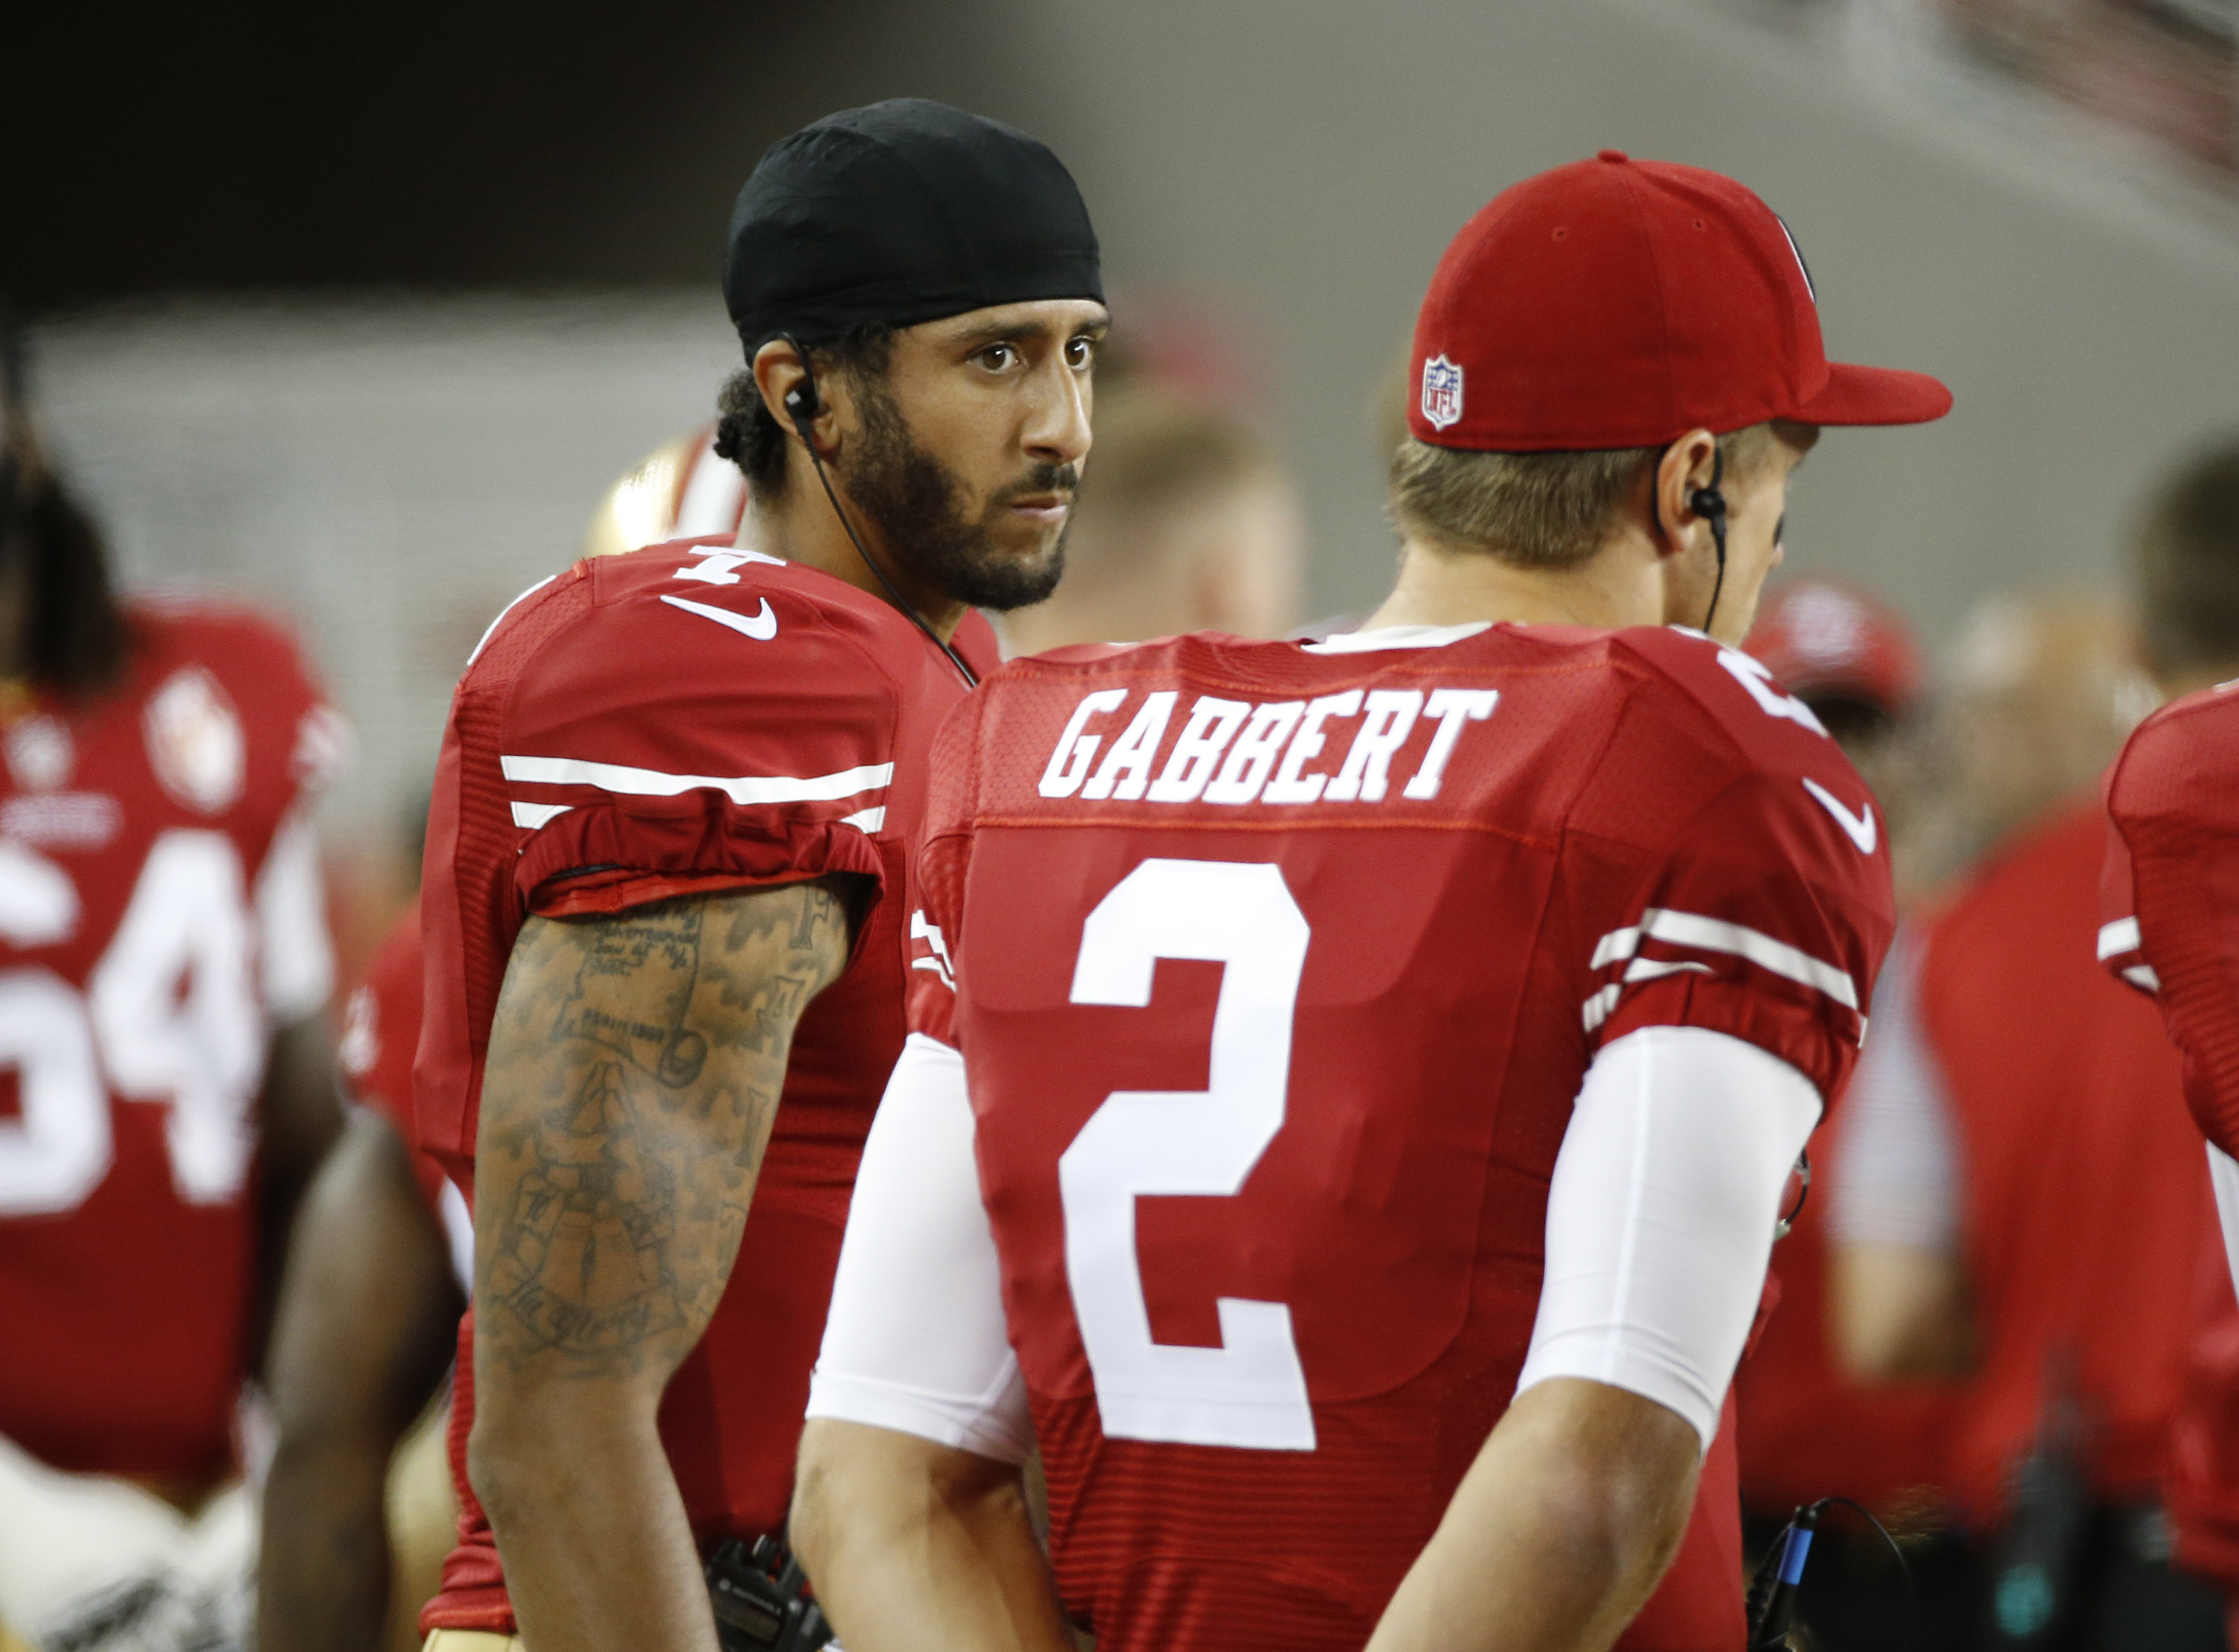 San Francisco 49ers quarterbacks Colin Kaepernick, left, and Blaine Gabbert stand on the sideline during the second half of an NFL preseason football game against the Green Bay Packers on Friday, Aug. 26, 2016, in Santa Clara, Calif. Green Bay won 21-10.